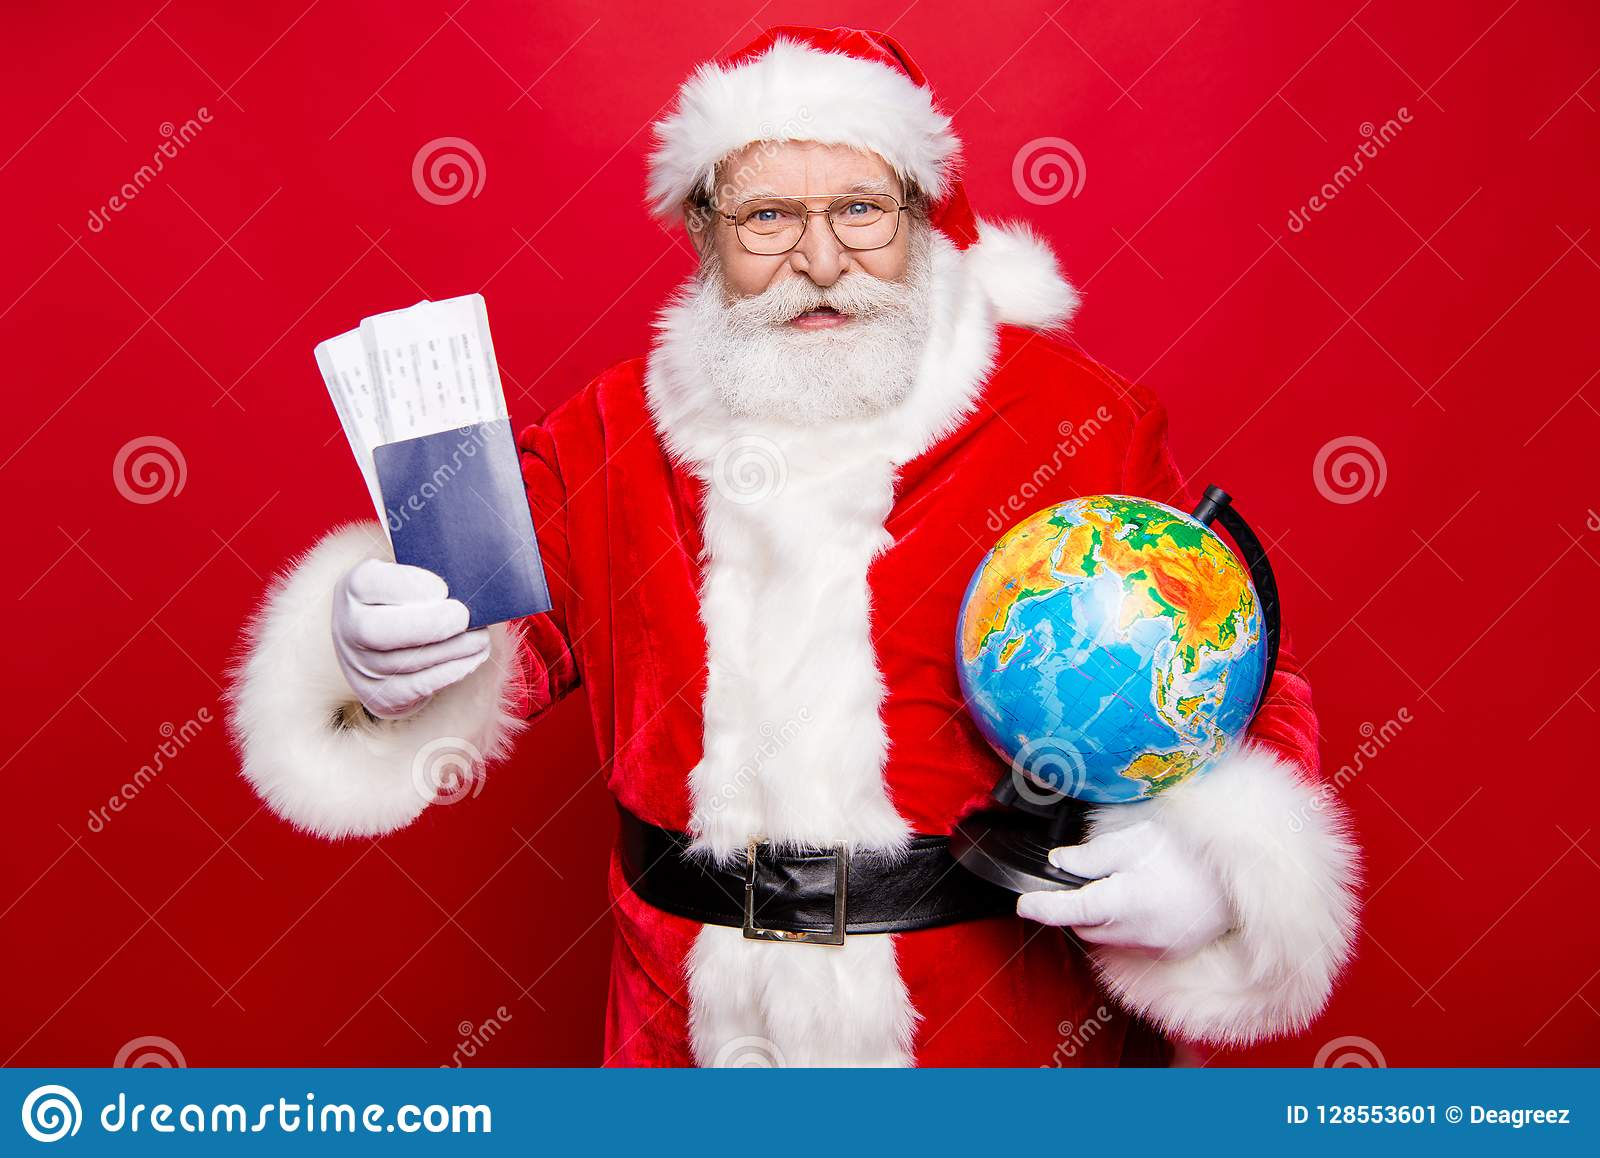 Best Newyear Present Mature Aged Santa In Spectacles With White